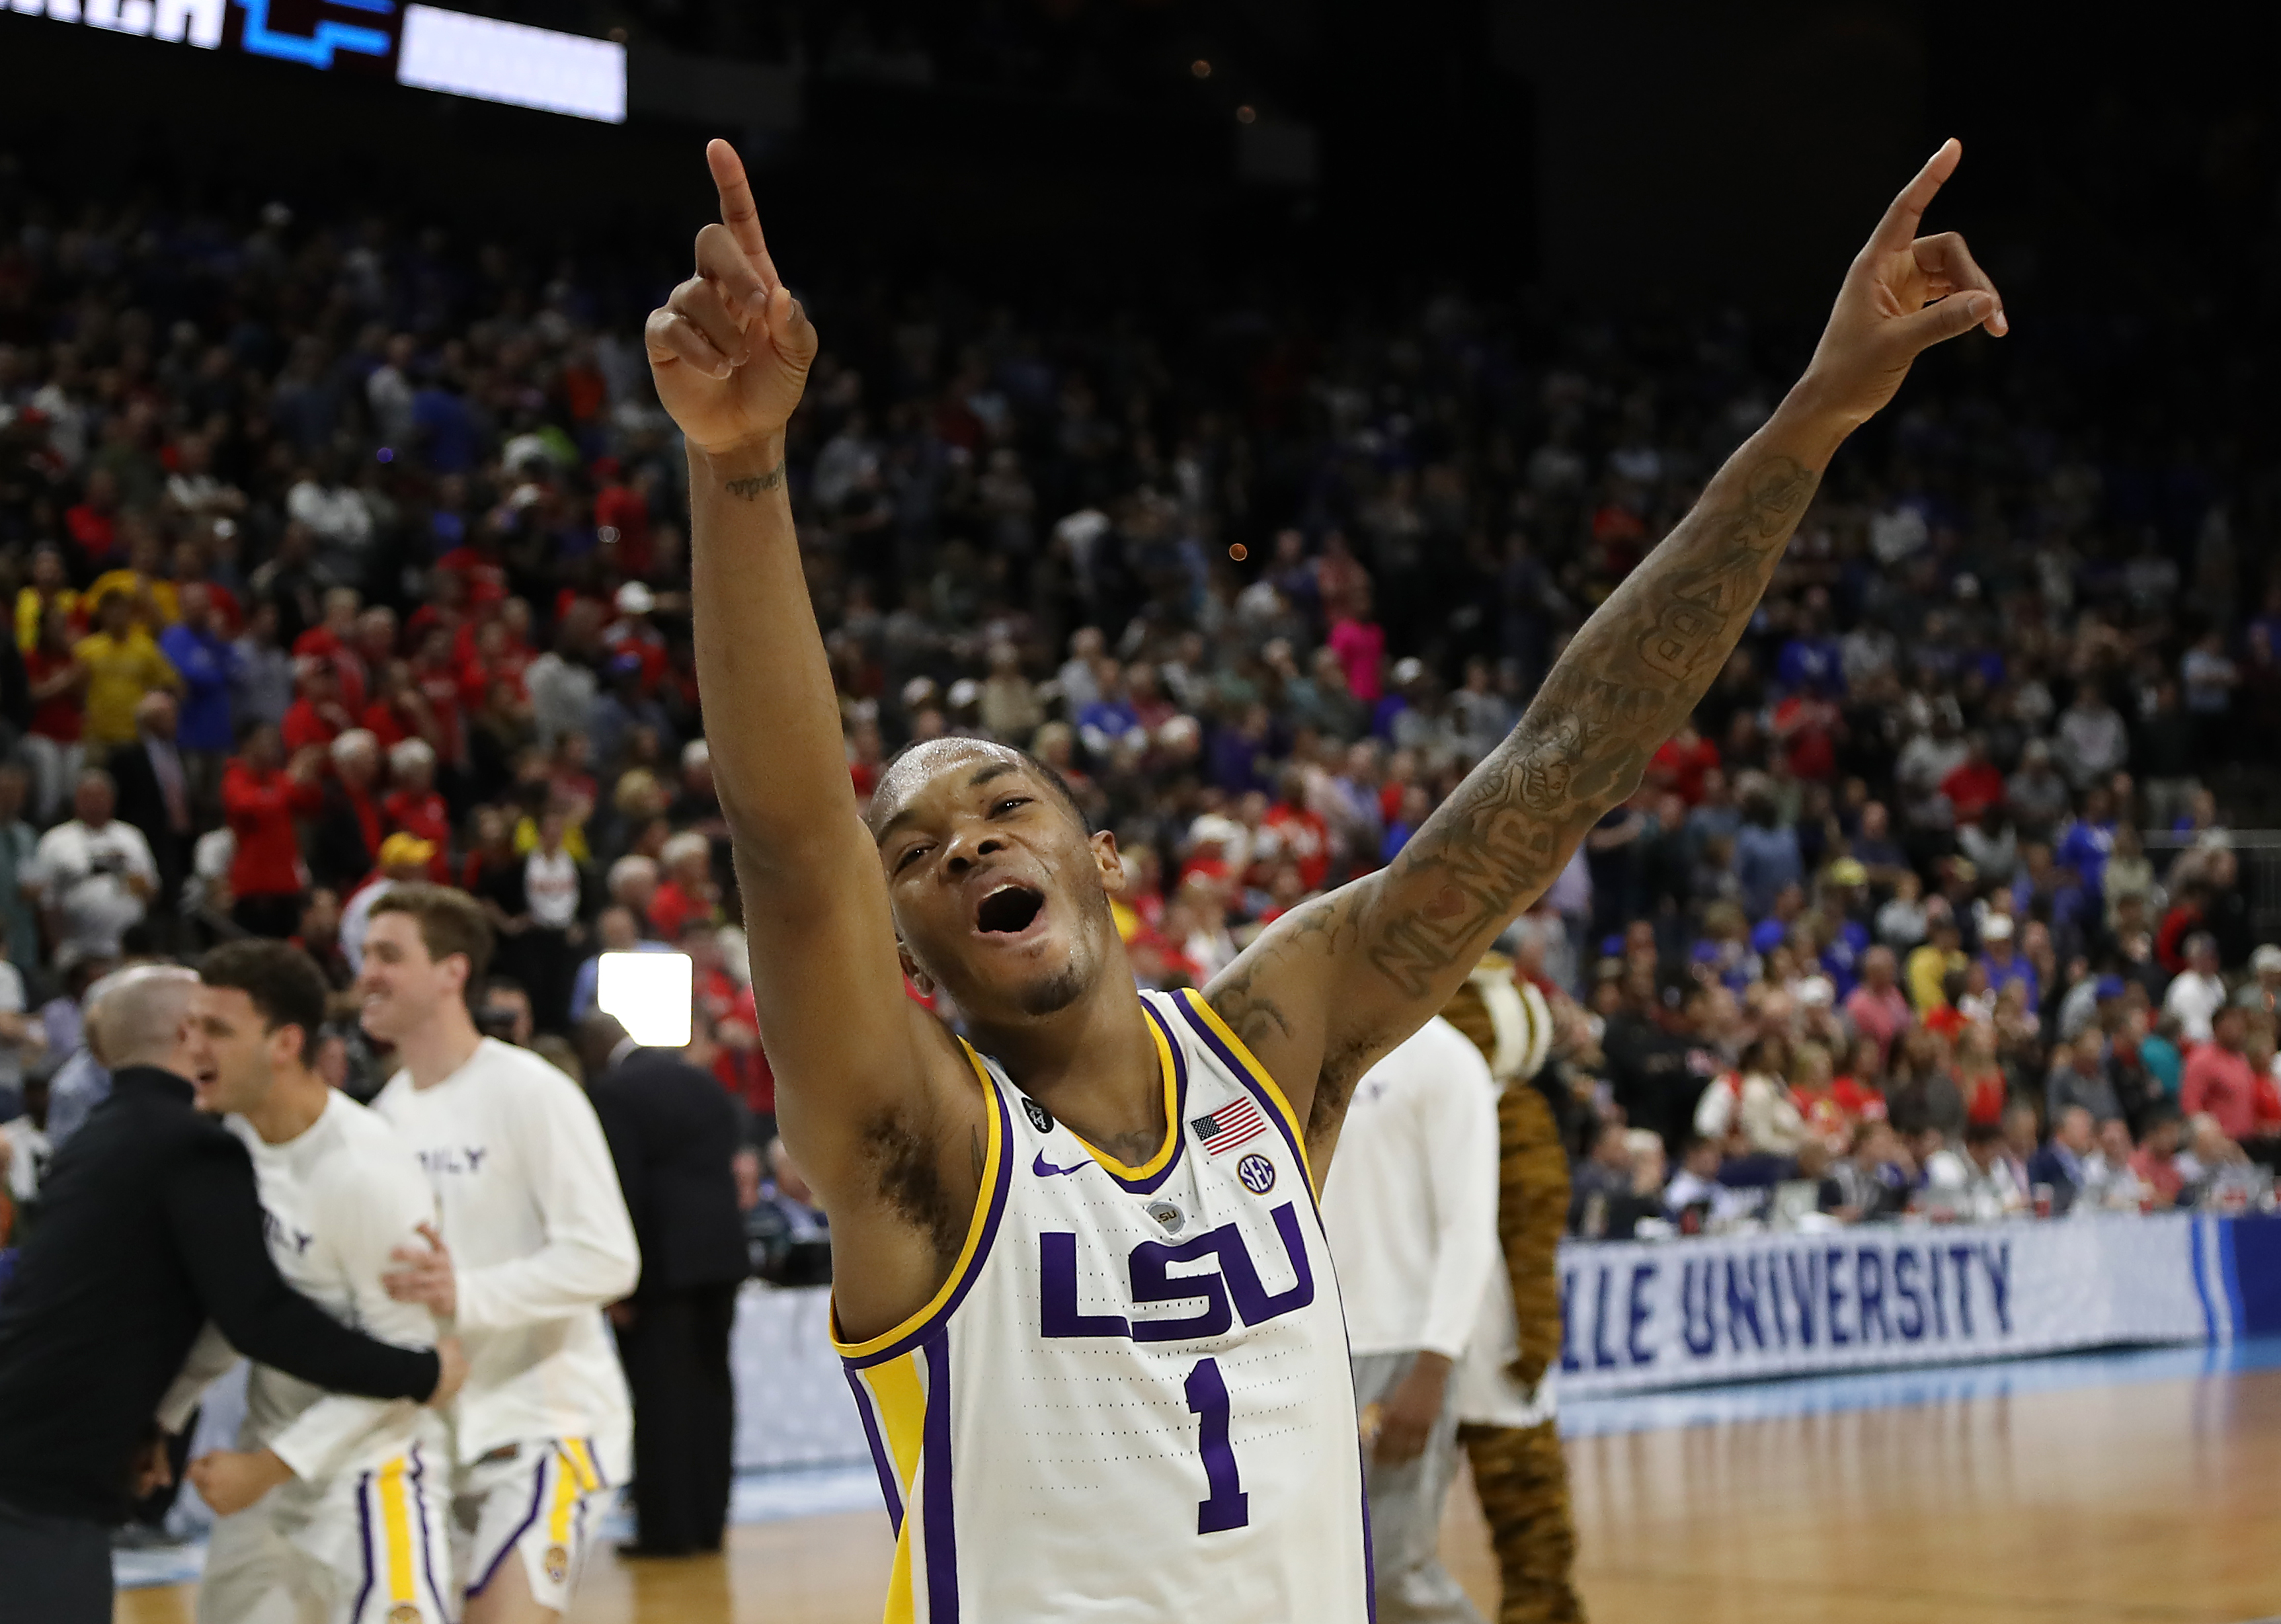 March Madness 2019: LSU are the bad boy heroes of the Sweet 16